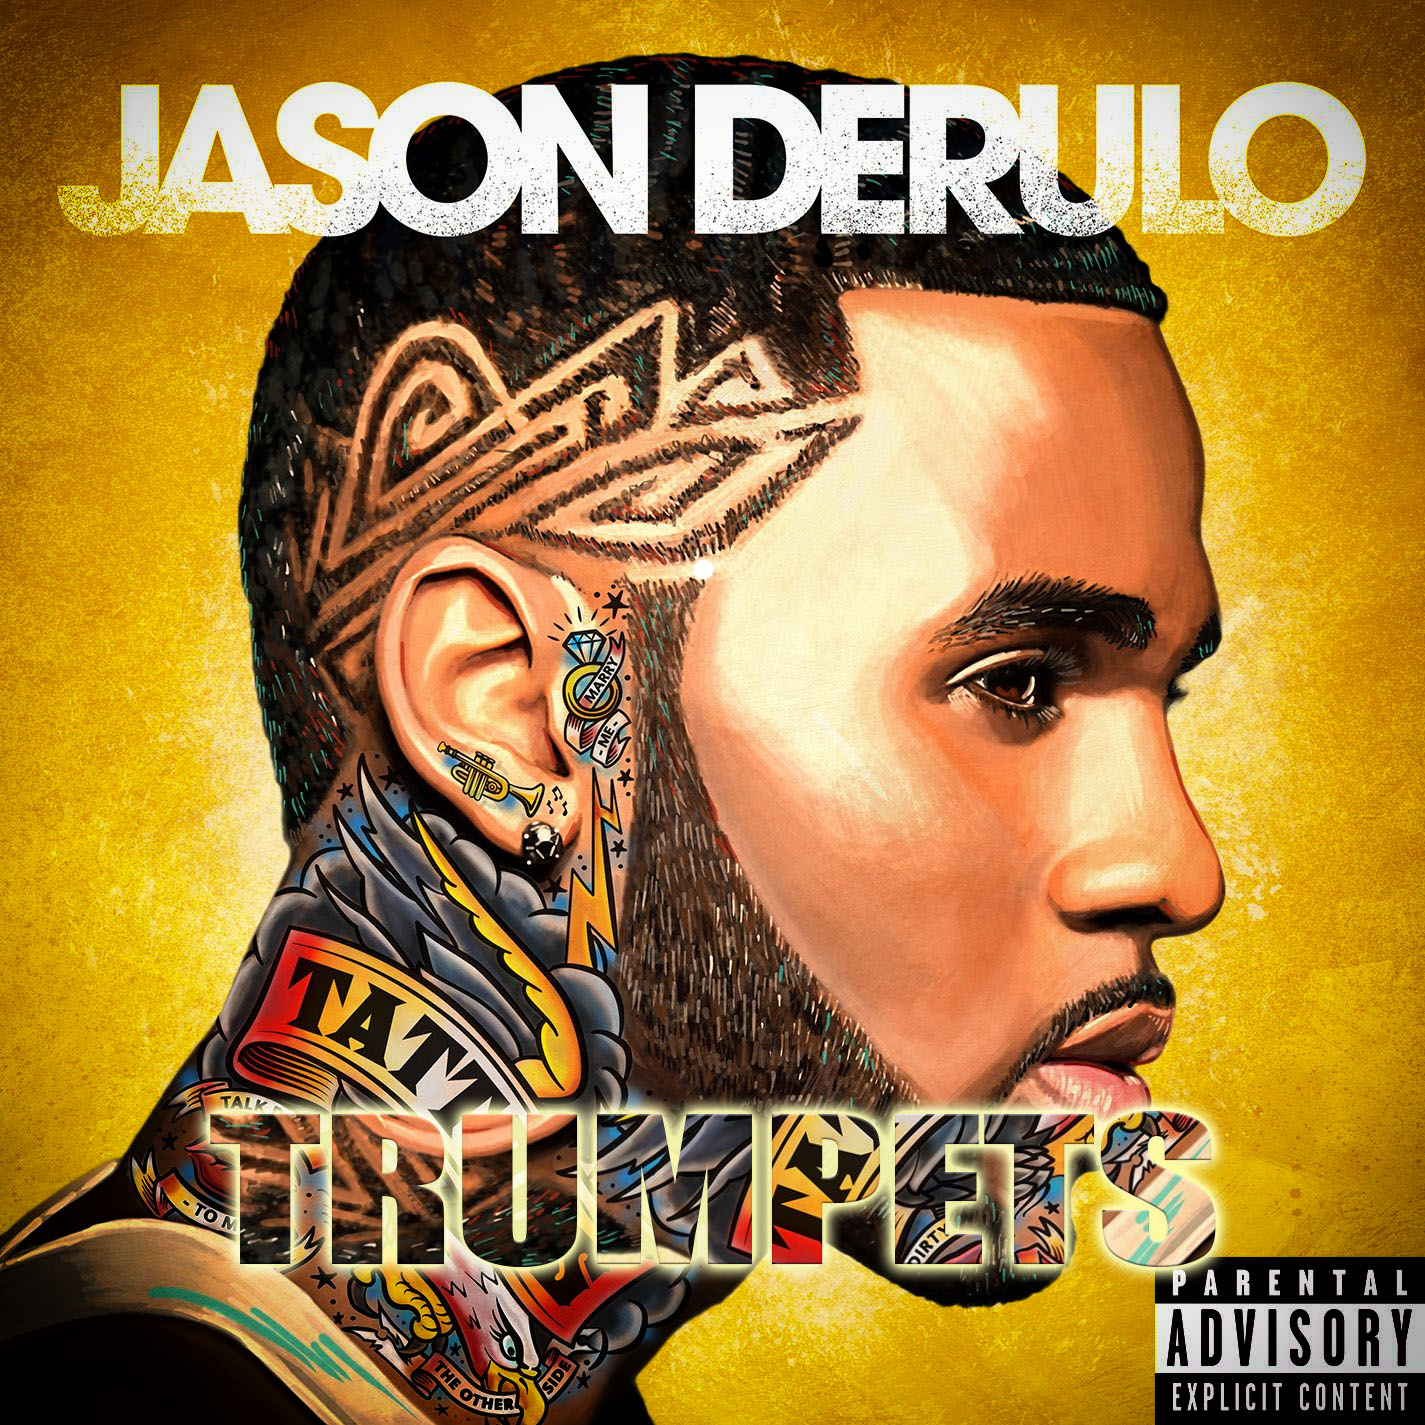 Trumpets  Jason Derulo  Music Letter Notation with